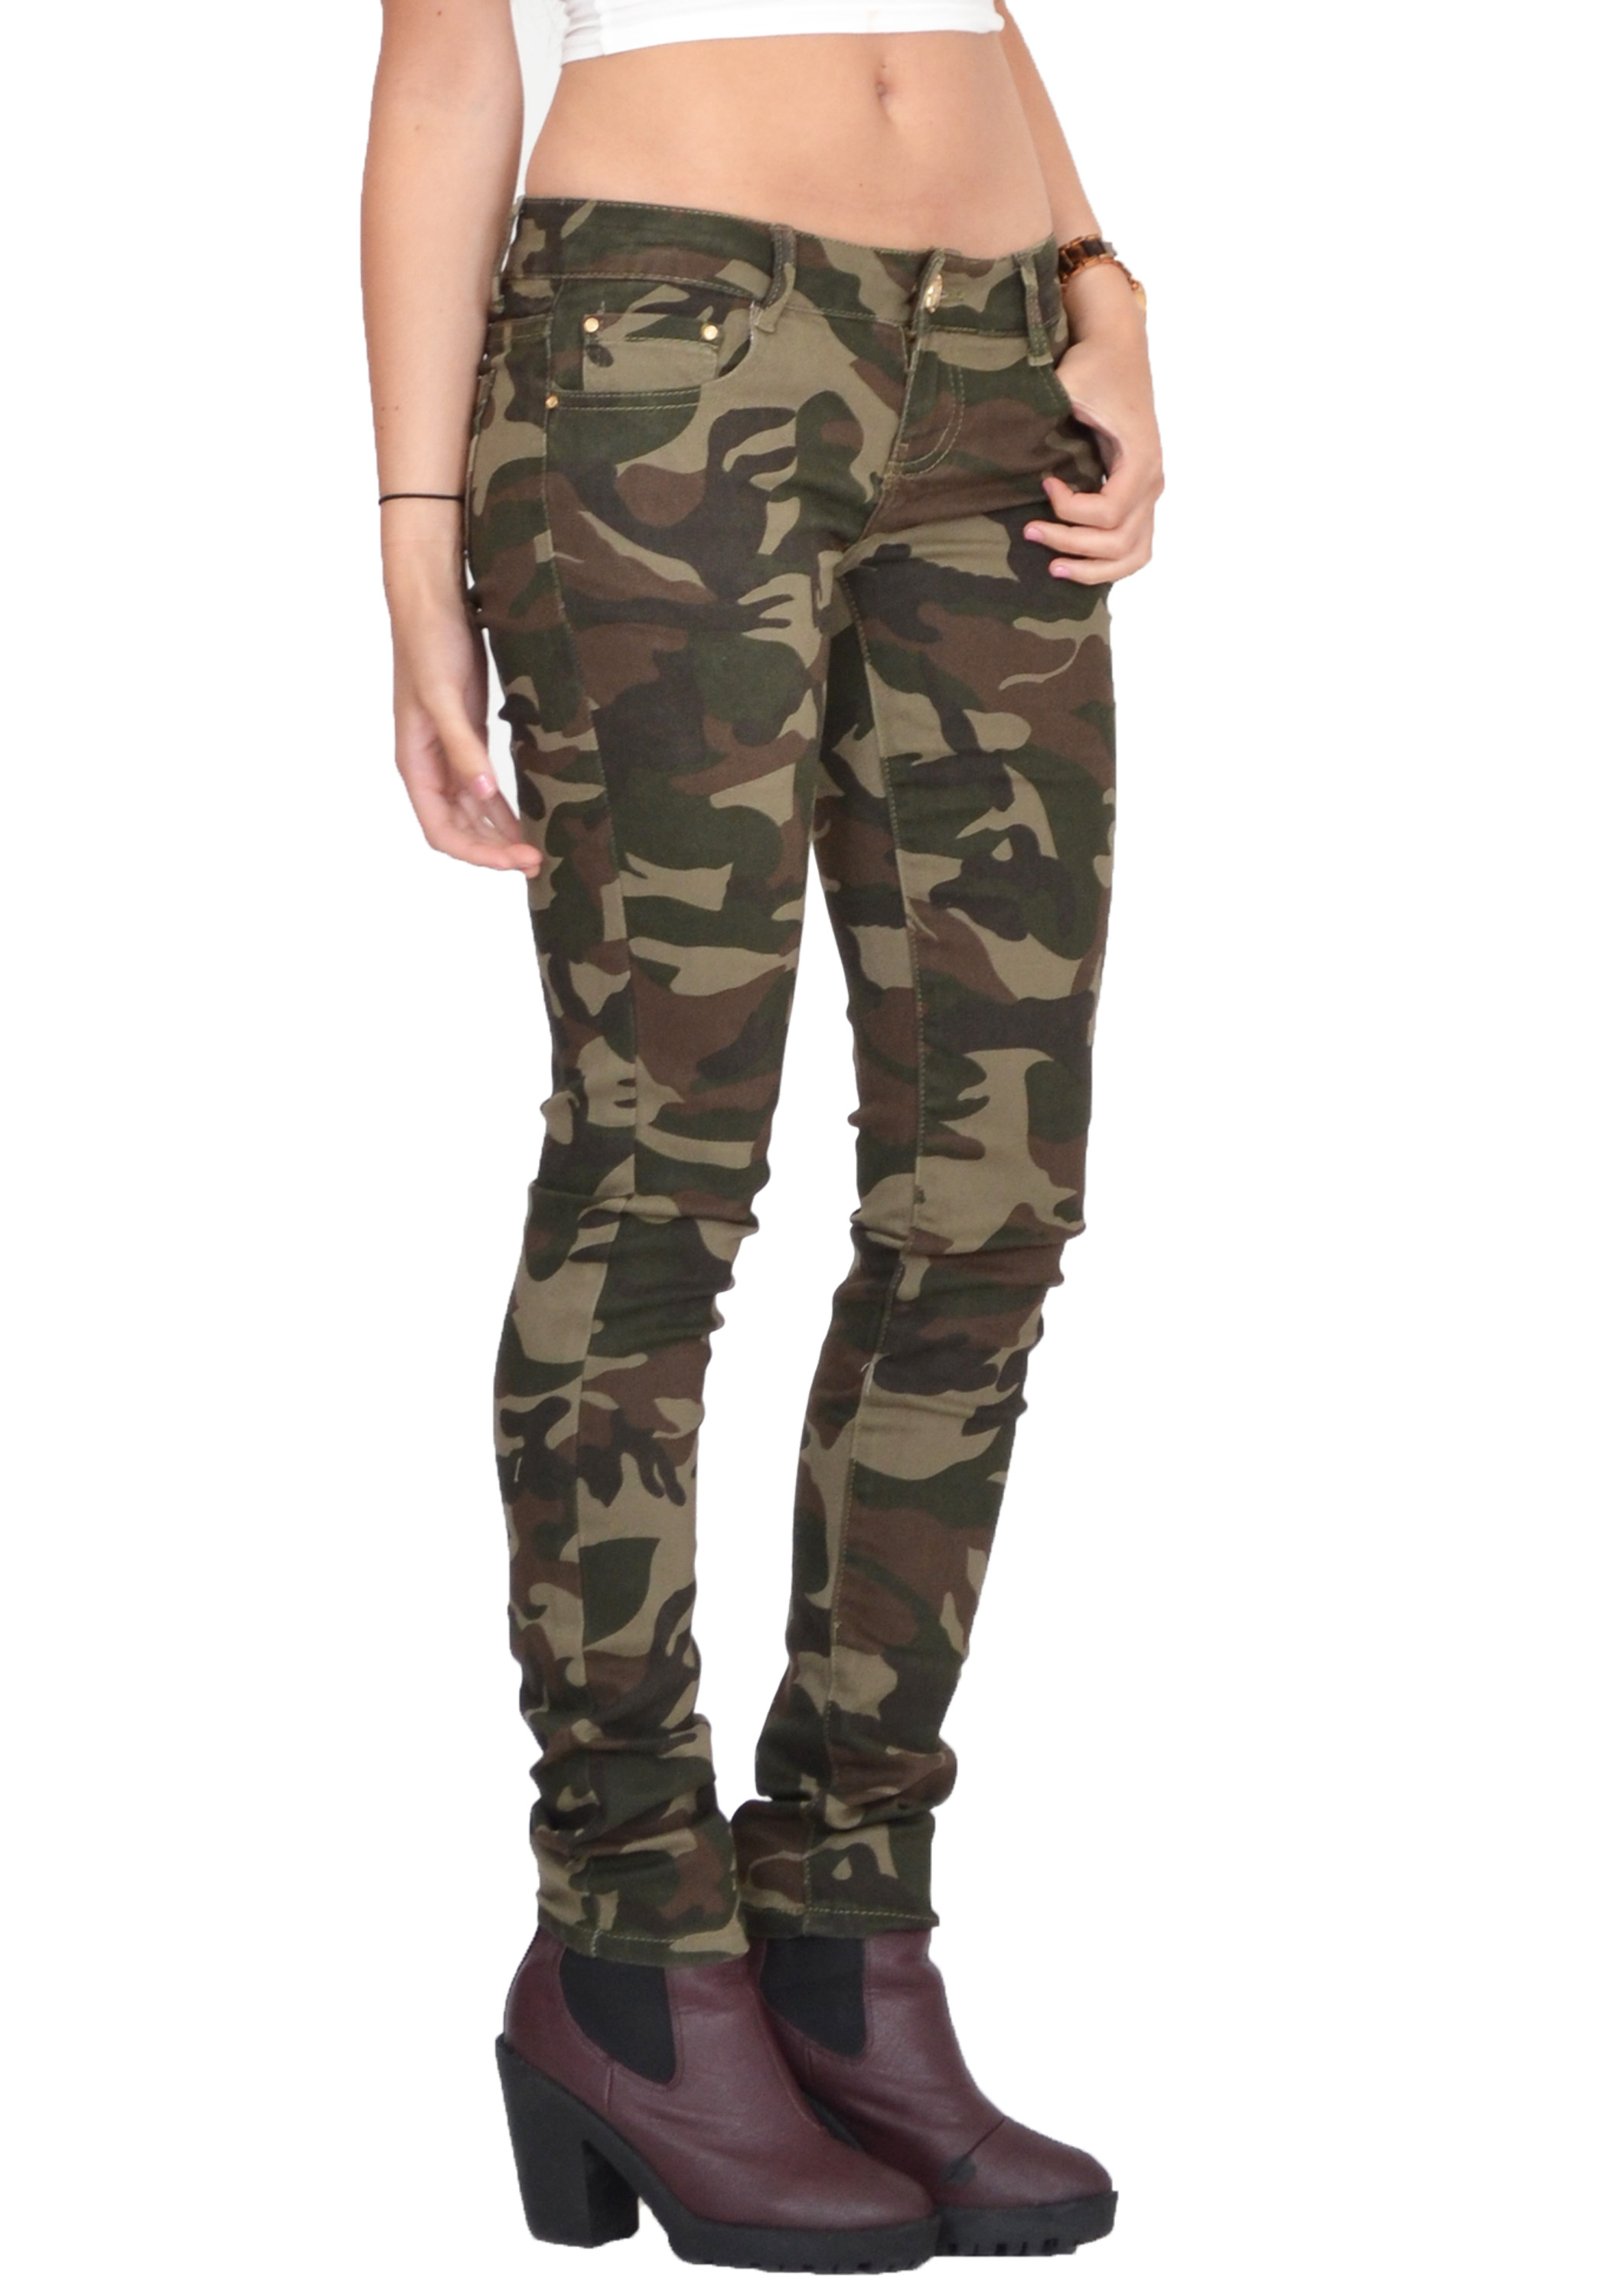 Find great deals on eBay for army skinny jeans. Shop with confidence.